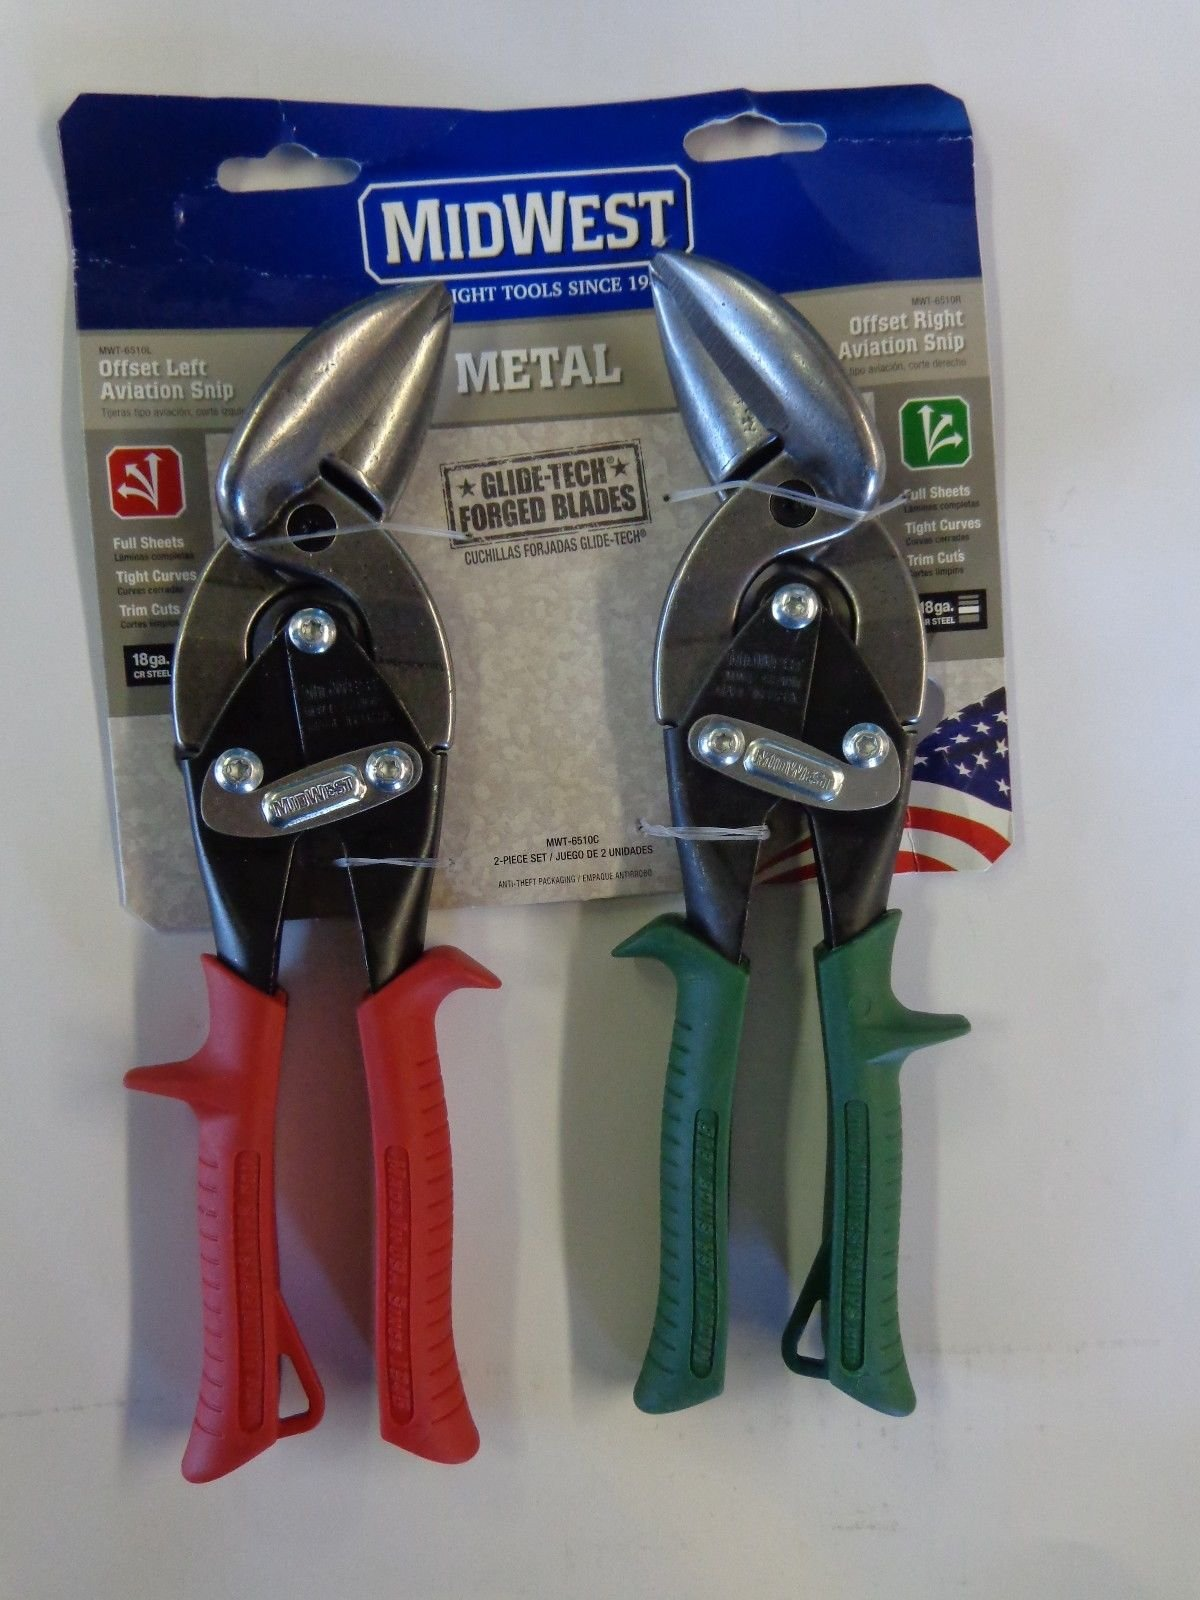 Midwest Tool and Cutlery MWT-6510C Midwest Snips Forged Blade 2-Piece Offset Aviation Snips Set 10 Pack Set (10) USA MADE!